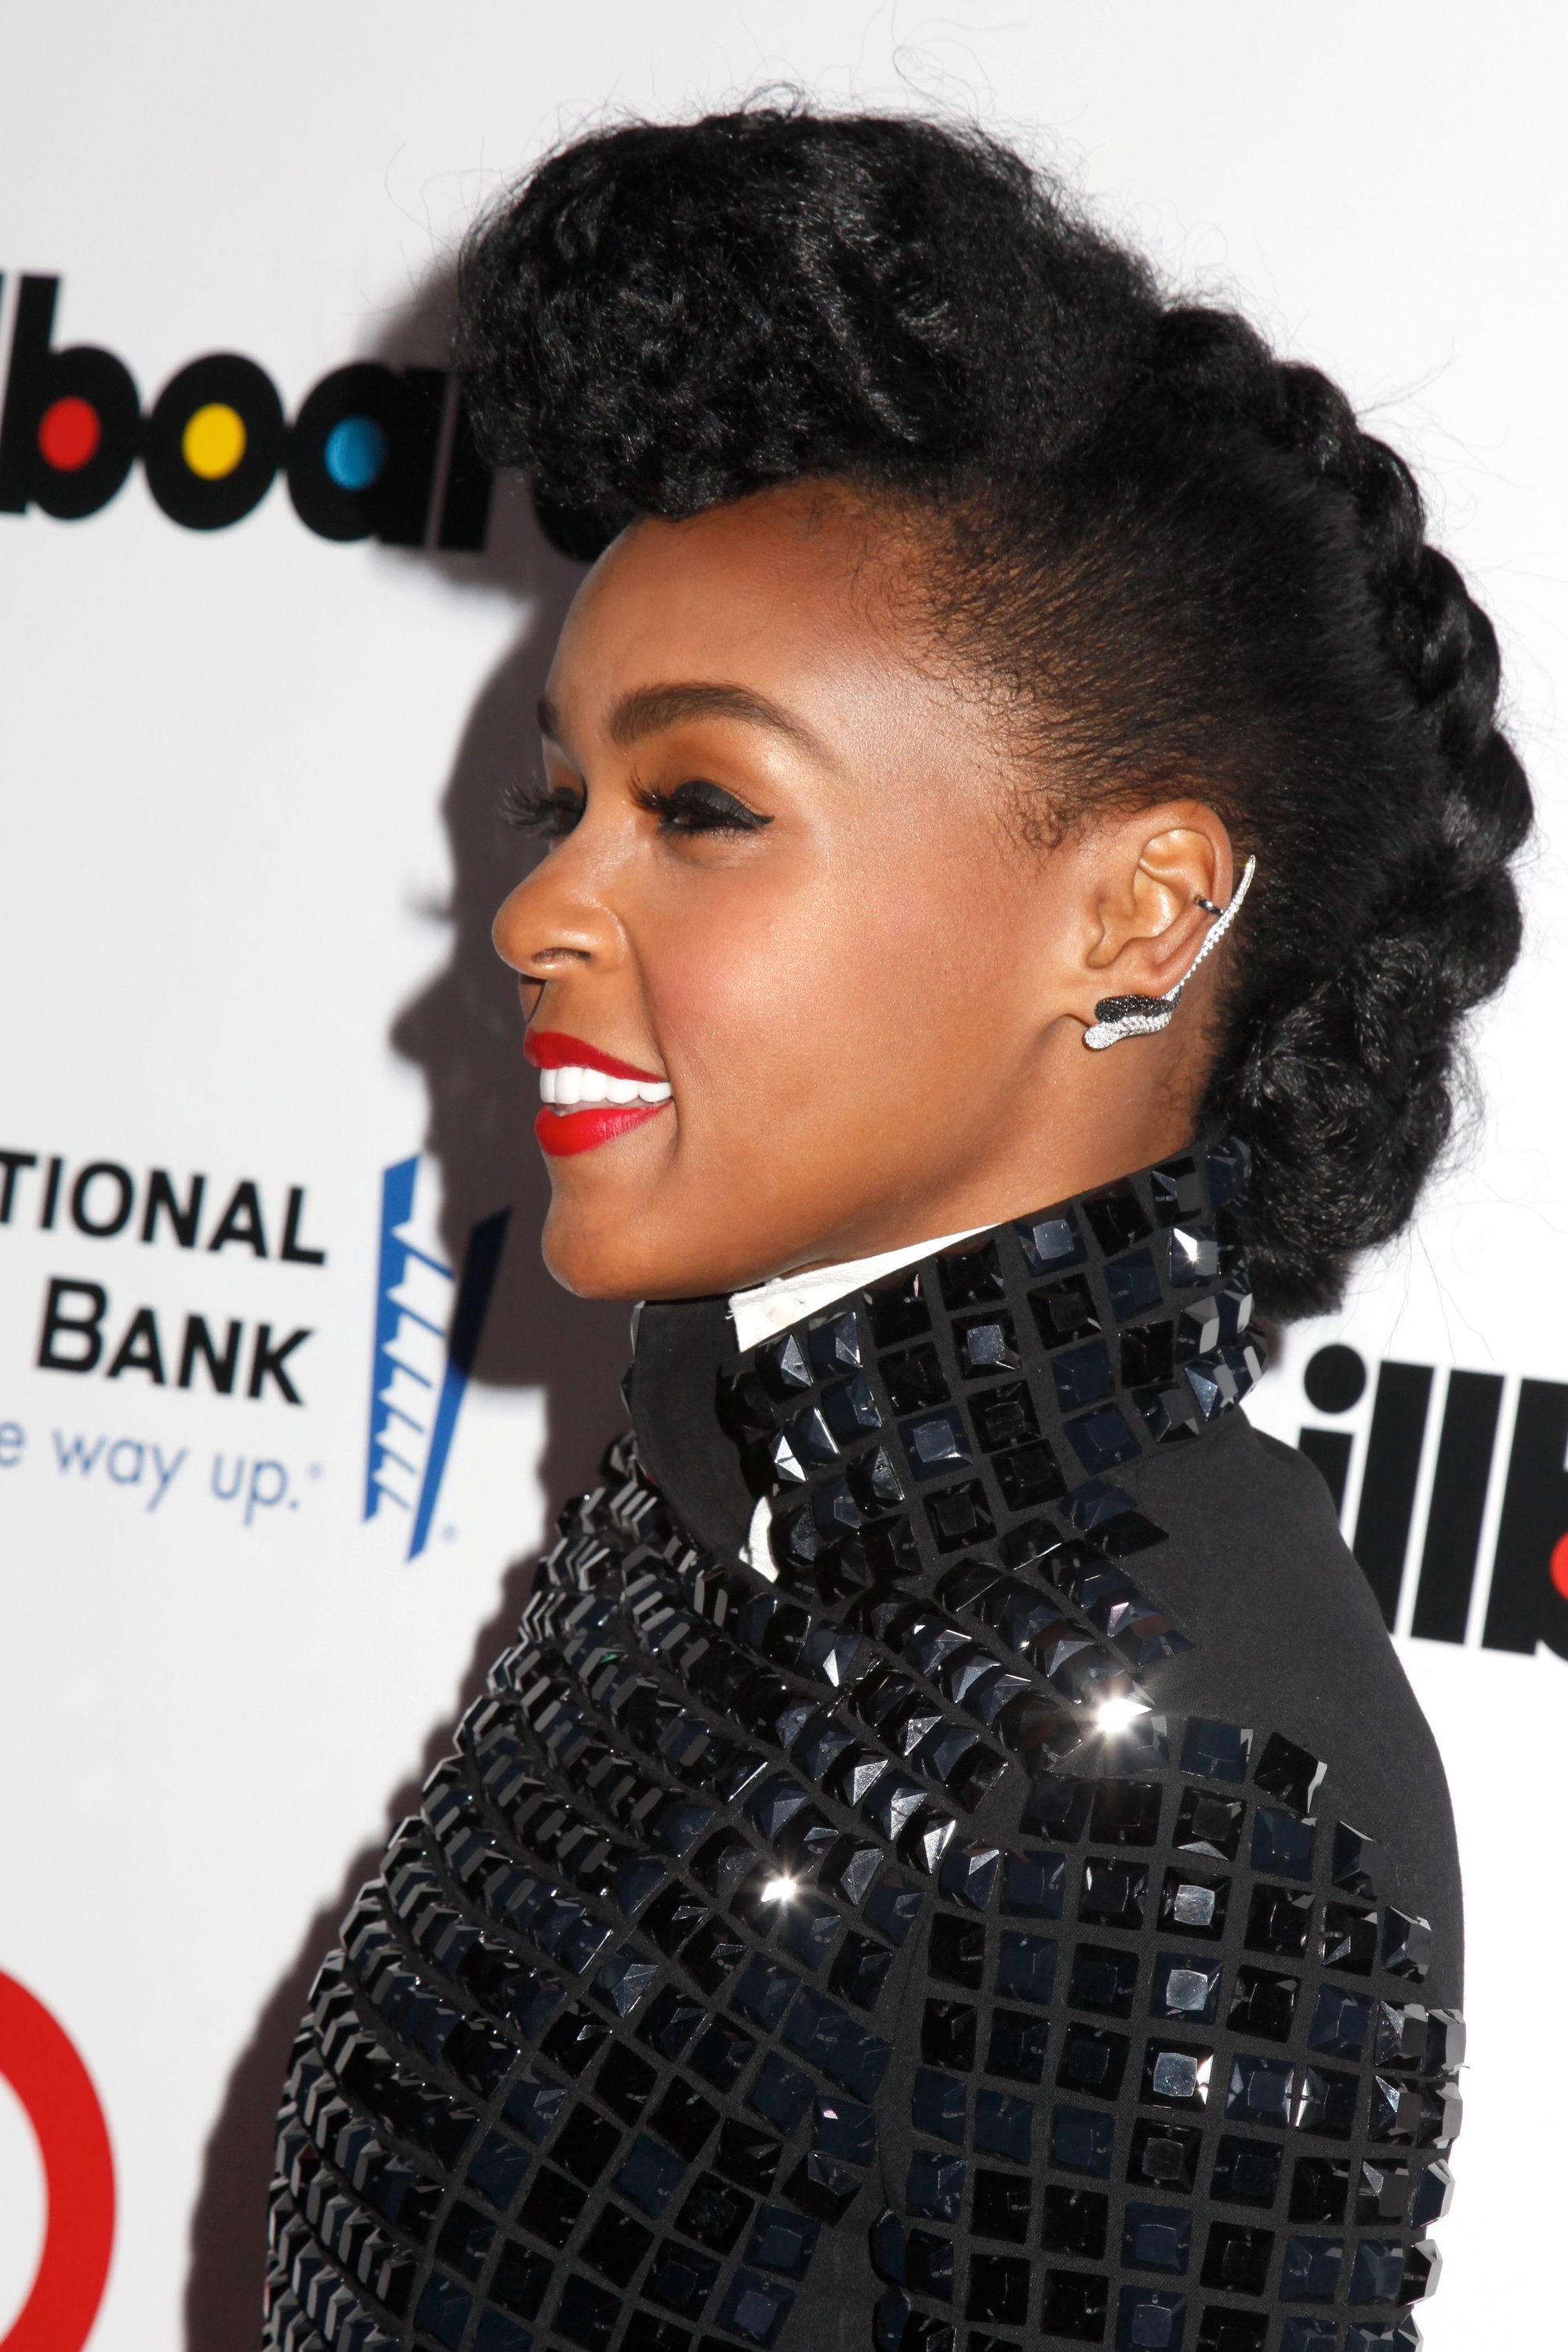 janelle monae on the red carpet wearing a black embellished outfit with her hair styled into a braided mohawk look